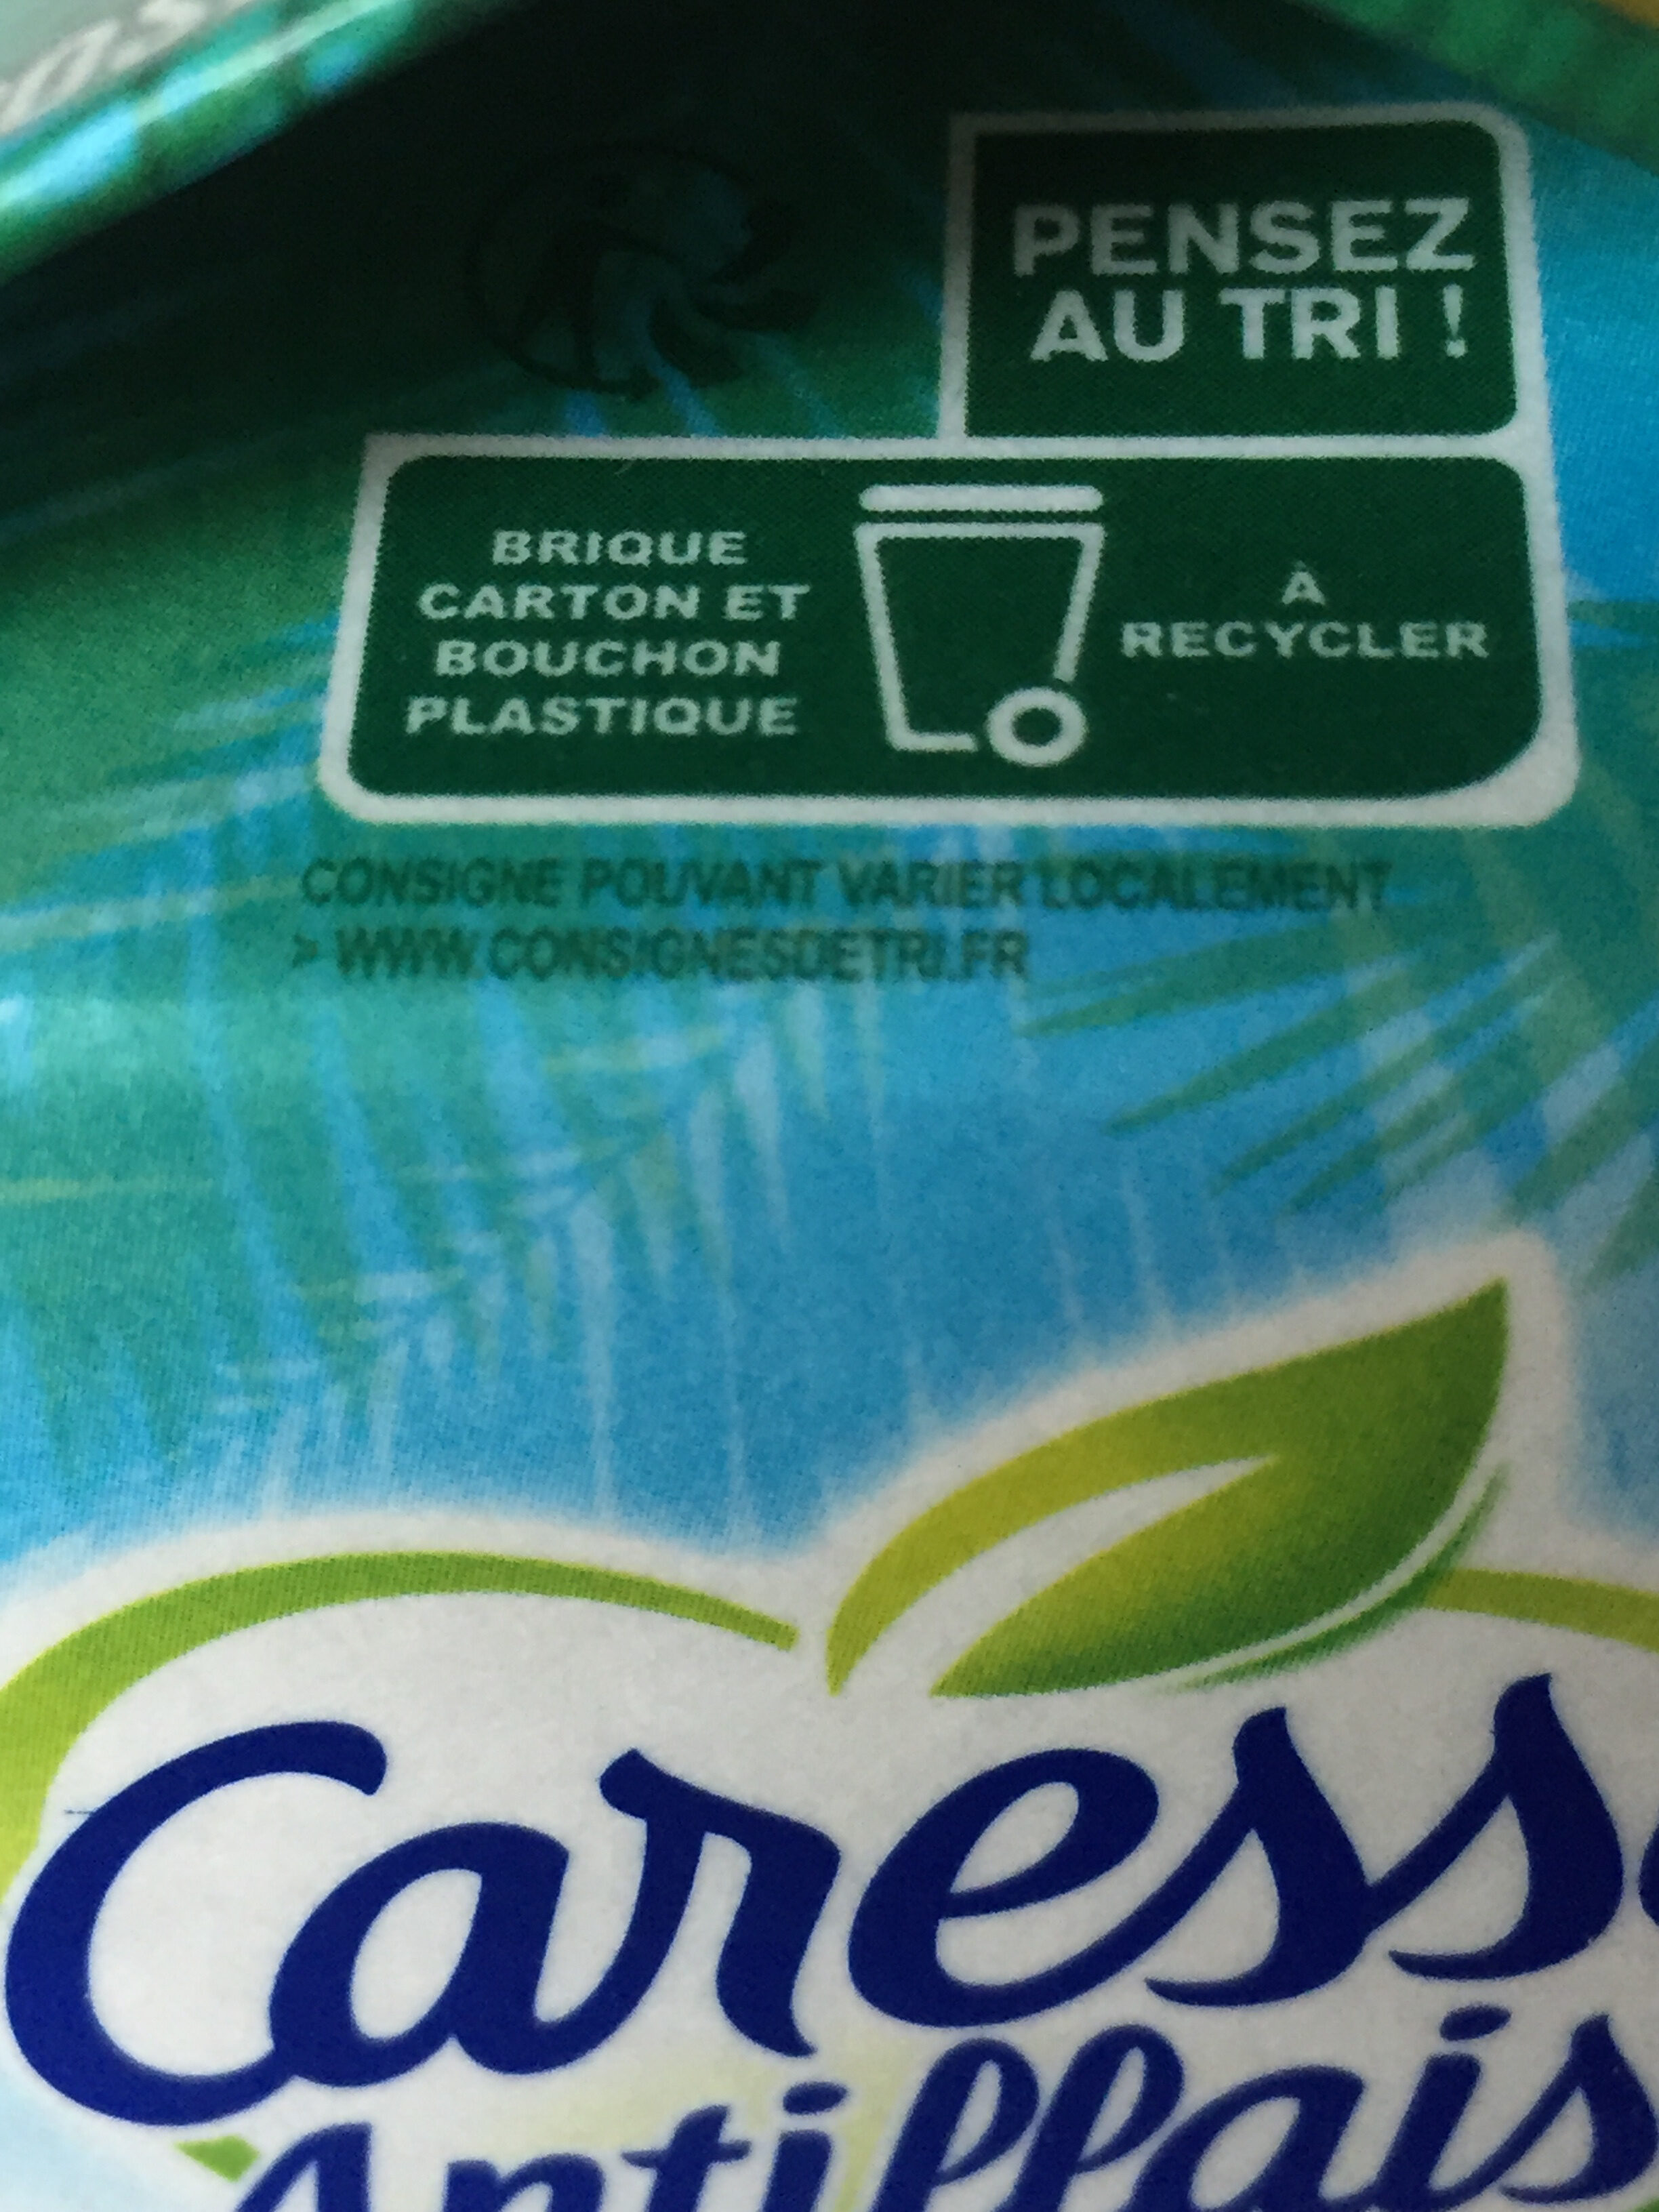 Caresse Antillaise  Goyave Rose - Instruction de recyclage et/ou informations d'emballage - fr